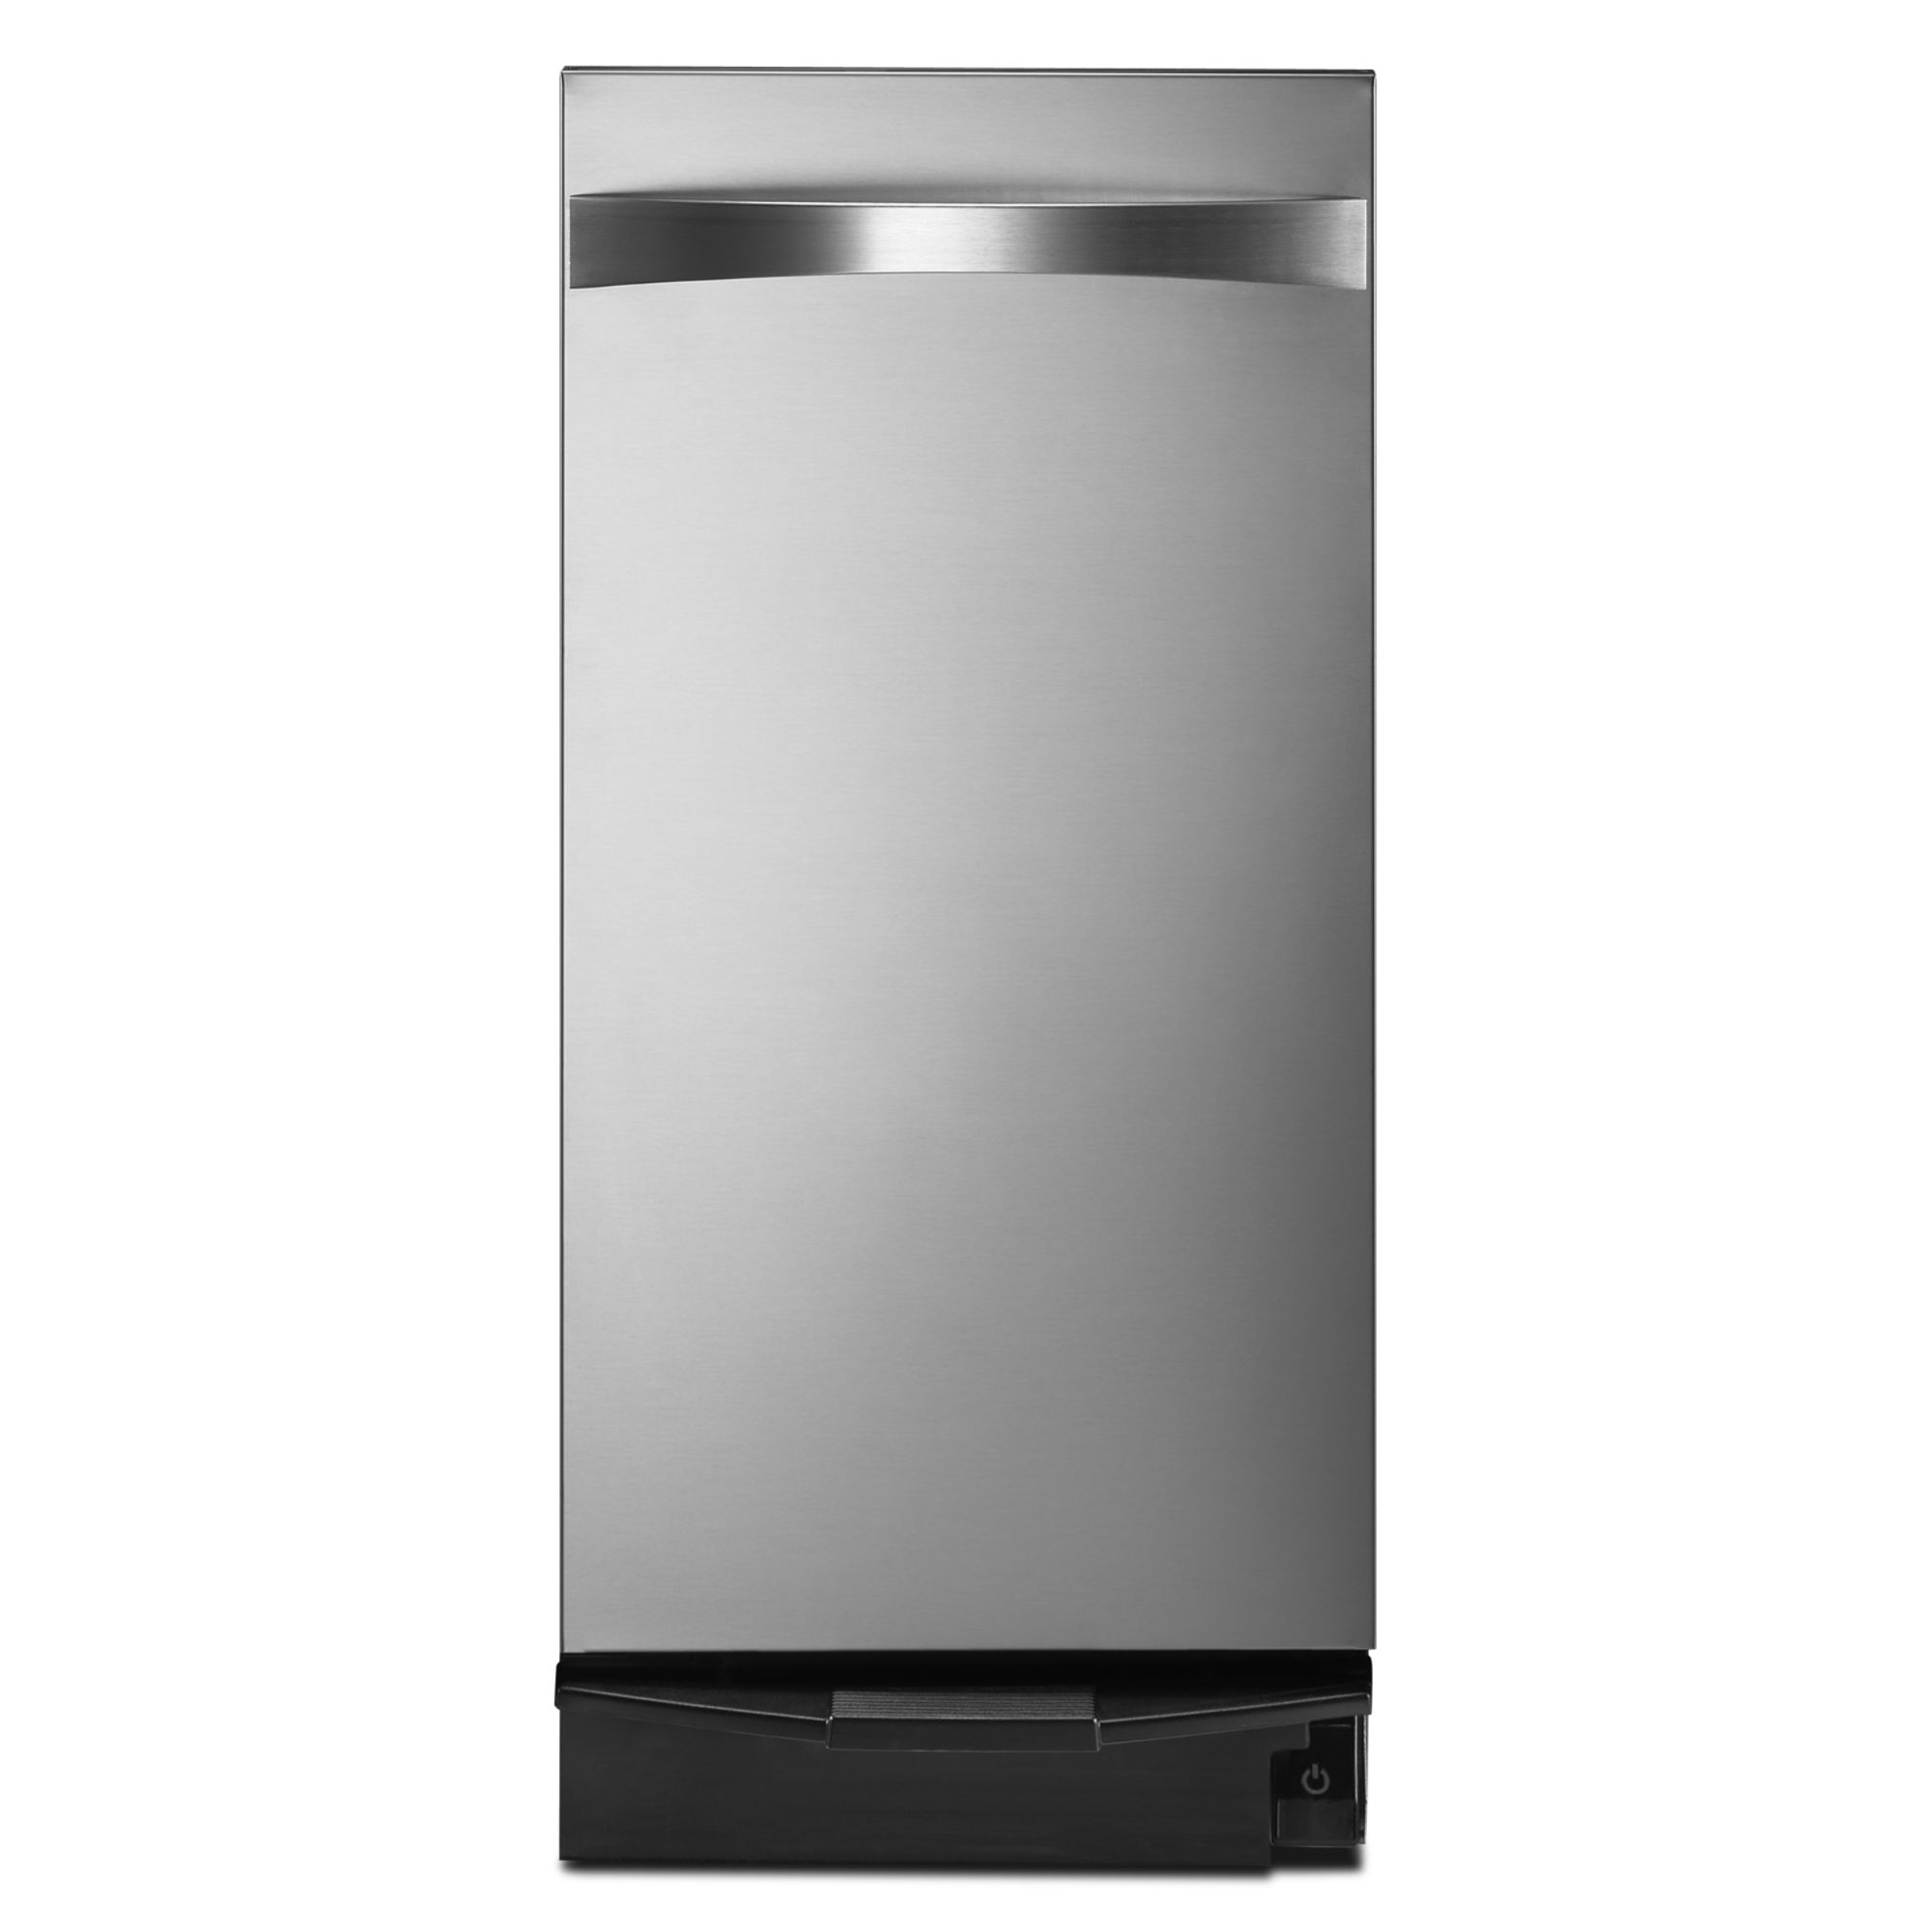 Kenmore elite trash compactor 14733 reviews prices for The kenmore